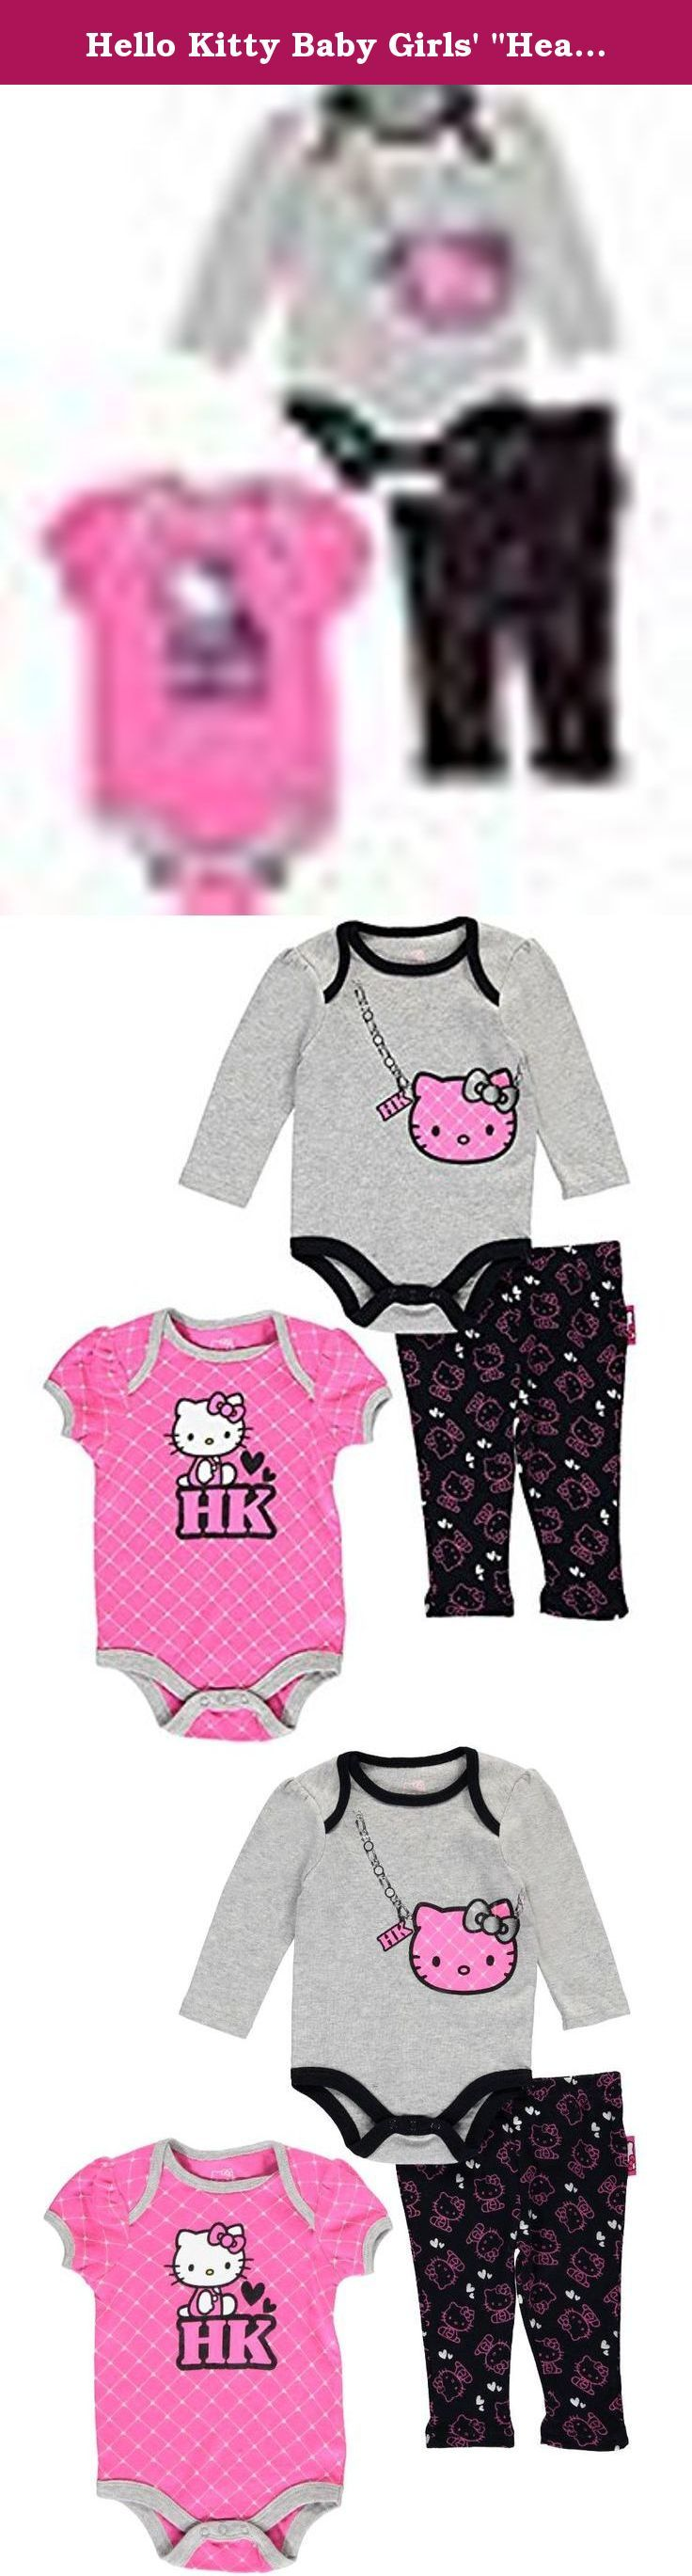 """Hello Kitty Baby Girls' """"Heart Lattice"""" 3-Piece Layette Set - heather gray, 6 -. Give baby the sweet prints and soft comfort of this Hello Kitty 3-piece set! Hello Kitty 3-piece layette set Jersey cotton long-sleeved bodysuit with lap collar, easy-change snaps, and graphic (100% cotton) Jersey cotton short-sleeved bodysuit with lap collar, easy-change snaps, and graphic (100% cotton) Jersey cotton leggings with elastic waistband (100% cotton) Machine wash cold, inside out Imported."""